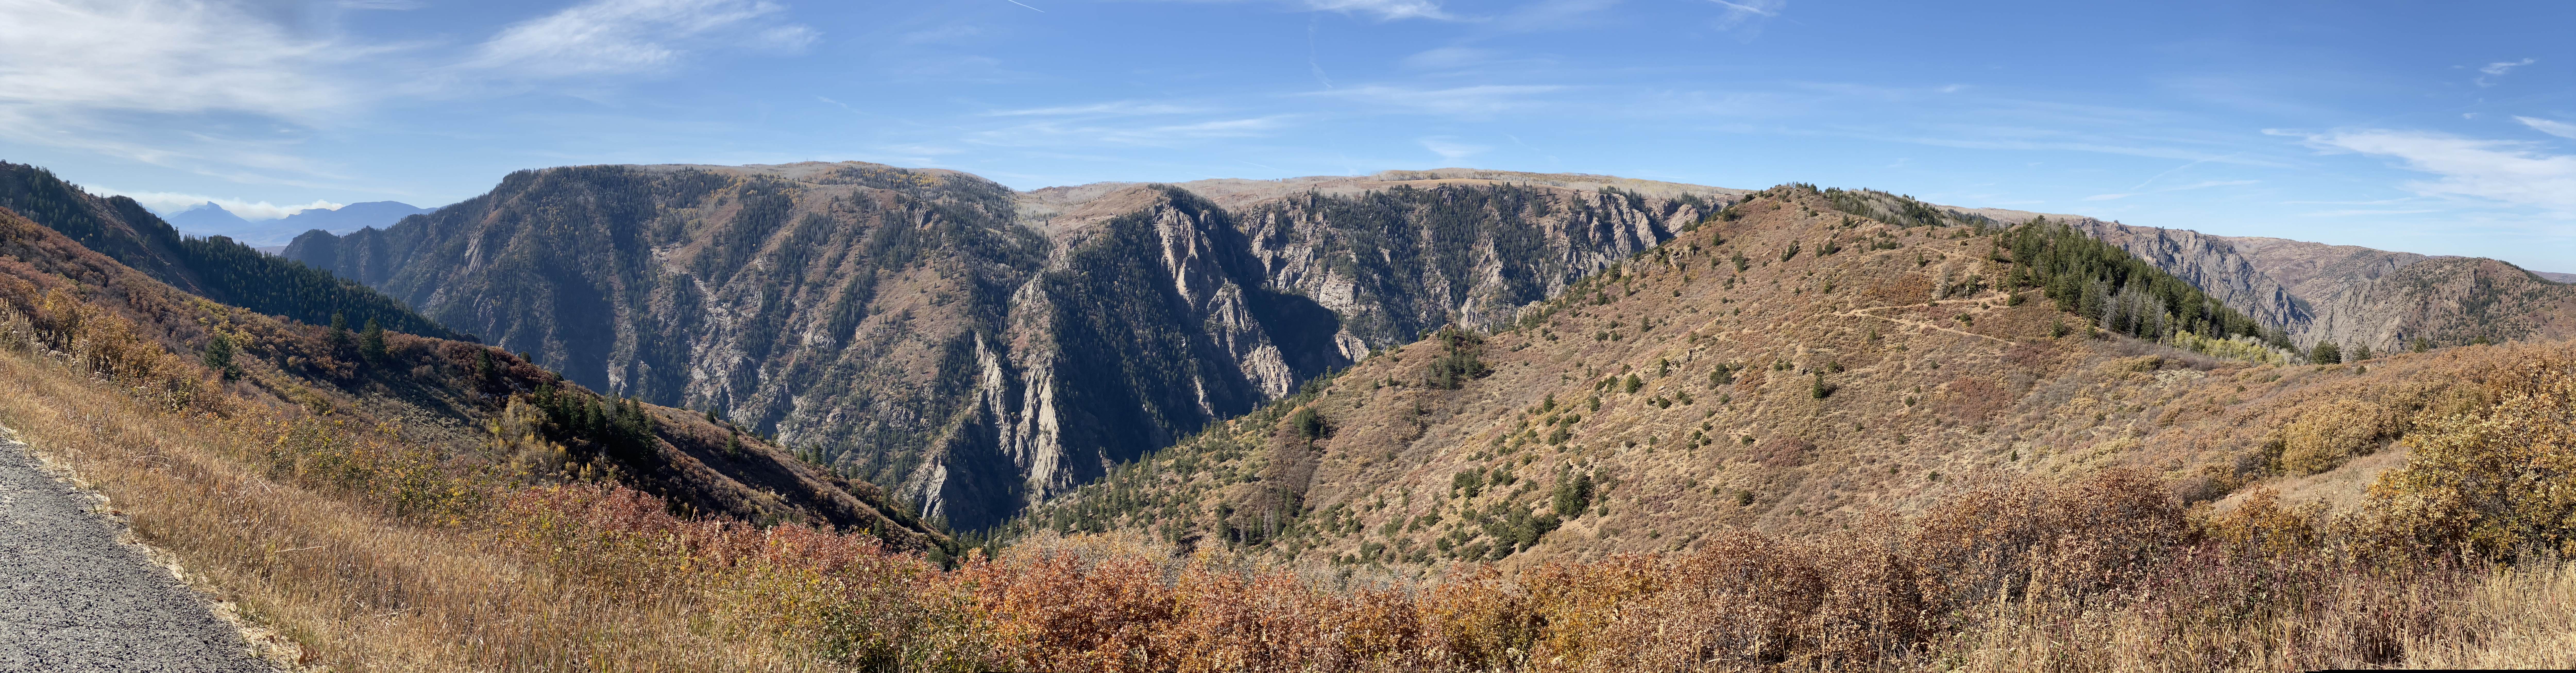 Panorama of Black Canyon from CO92.